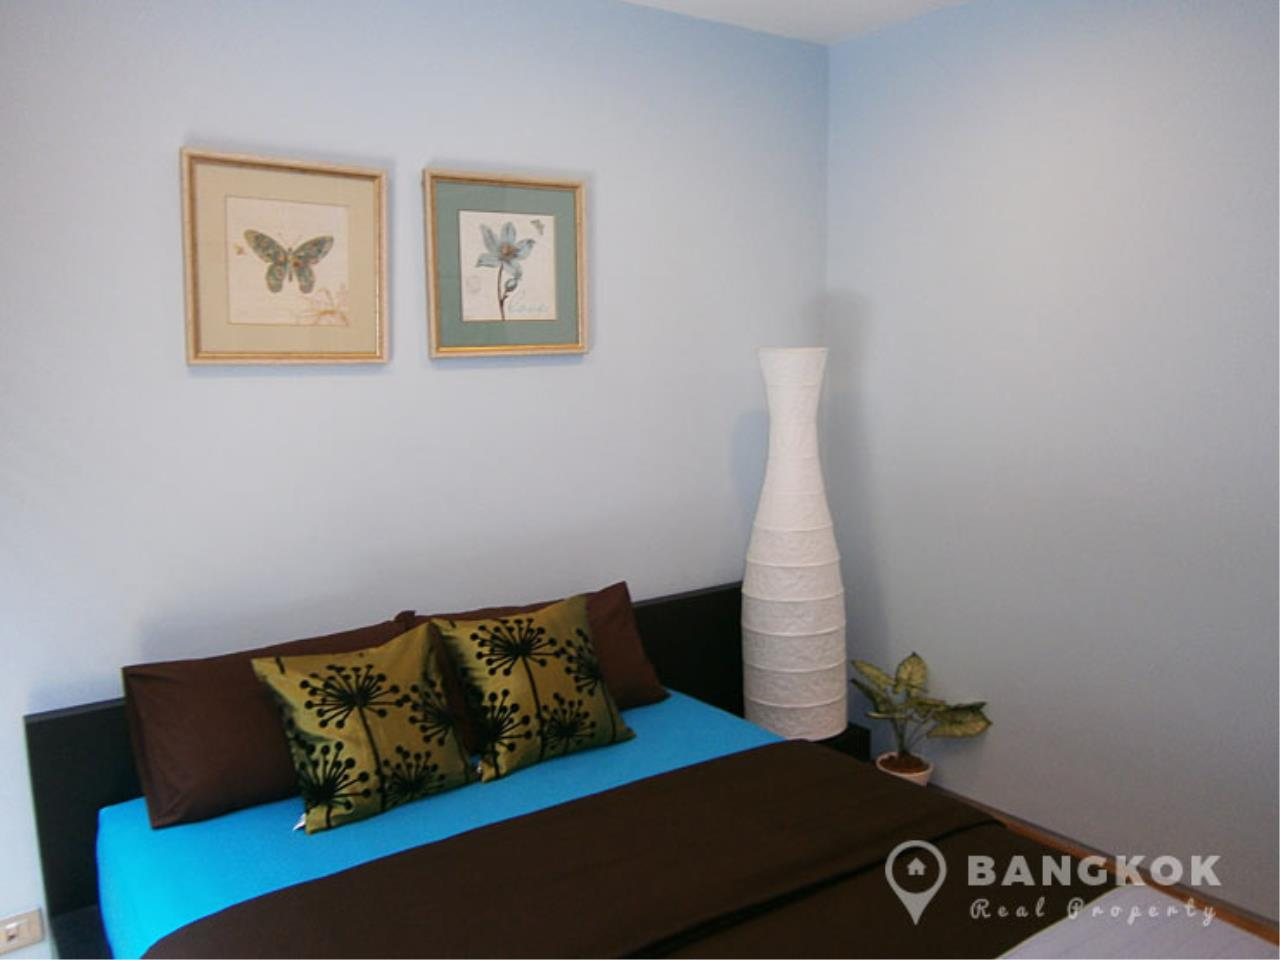 Bangkok Real Property Agency's Ficus Lane | A Fabulous Spacious 3 Bed 4 Bath Duplex near BTS 4